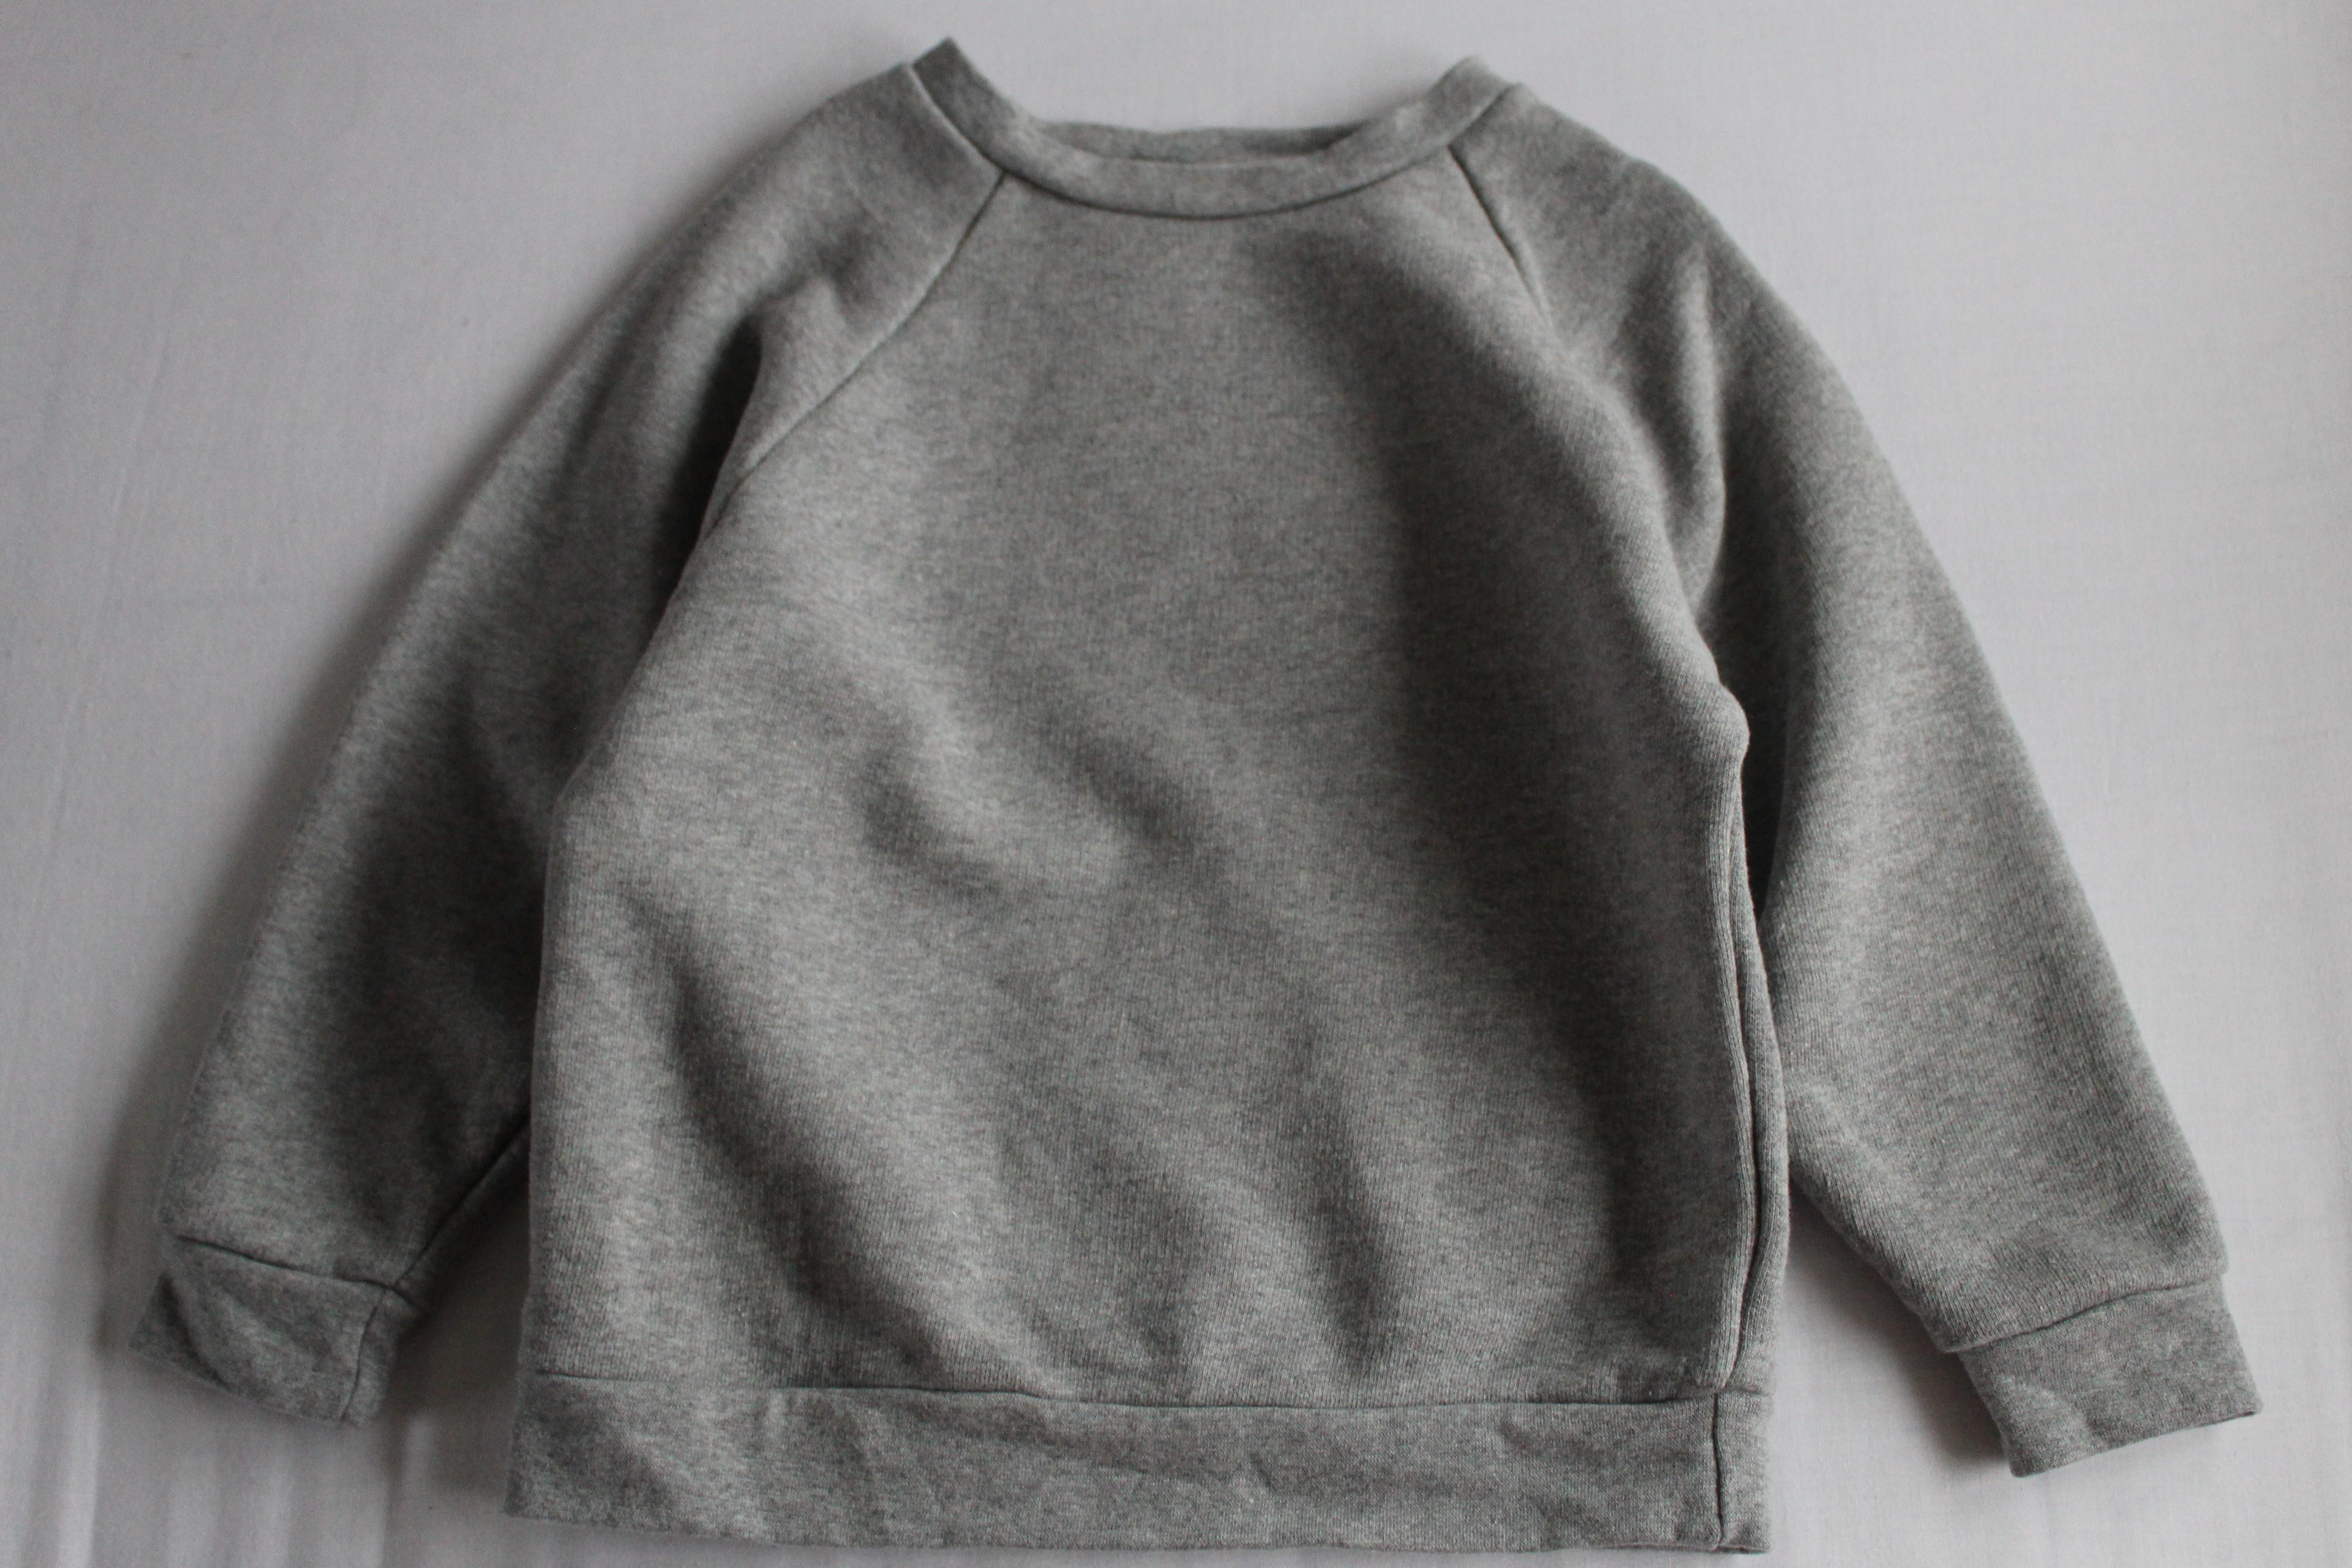 Sample sale KIT Clothing grey marl sweatshirt 4-5 years